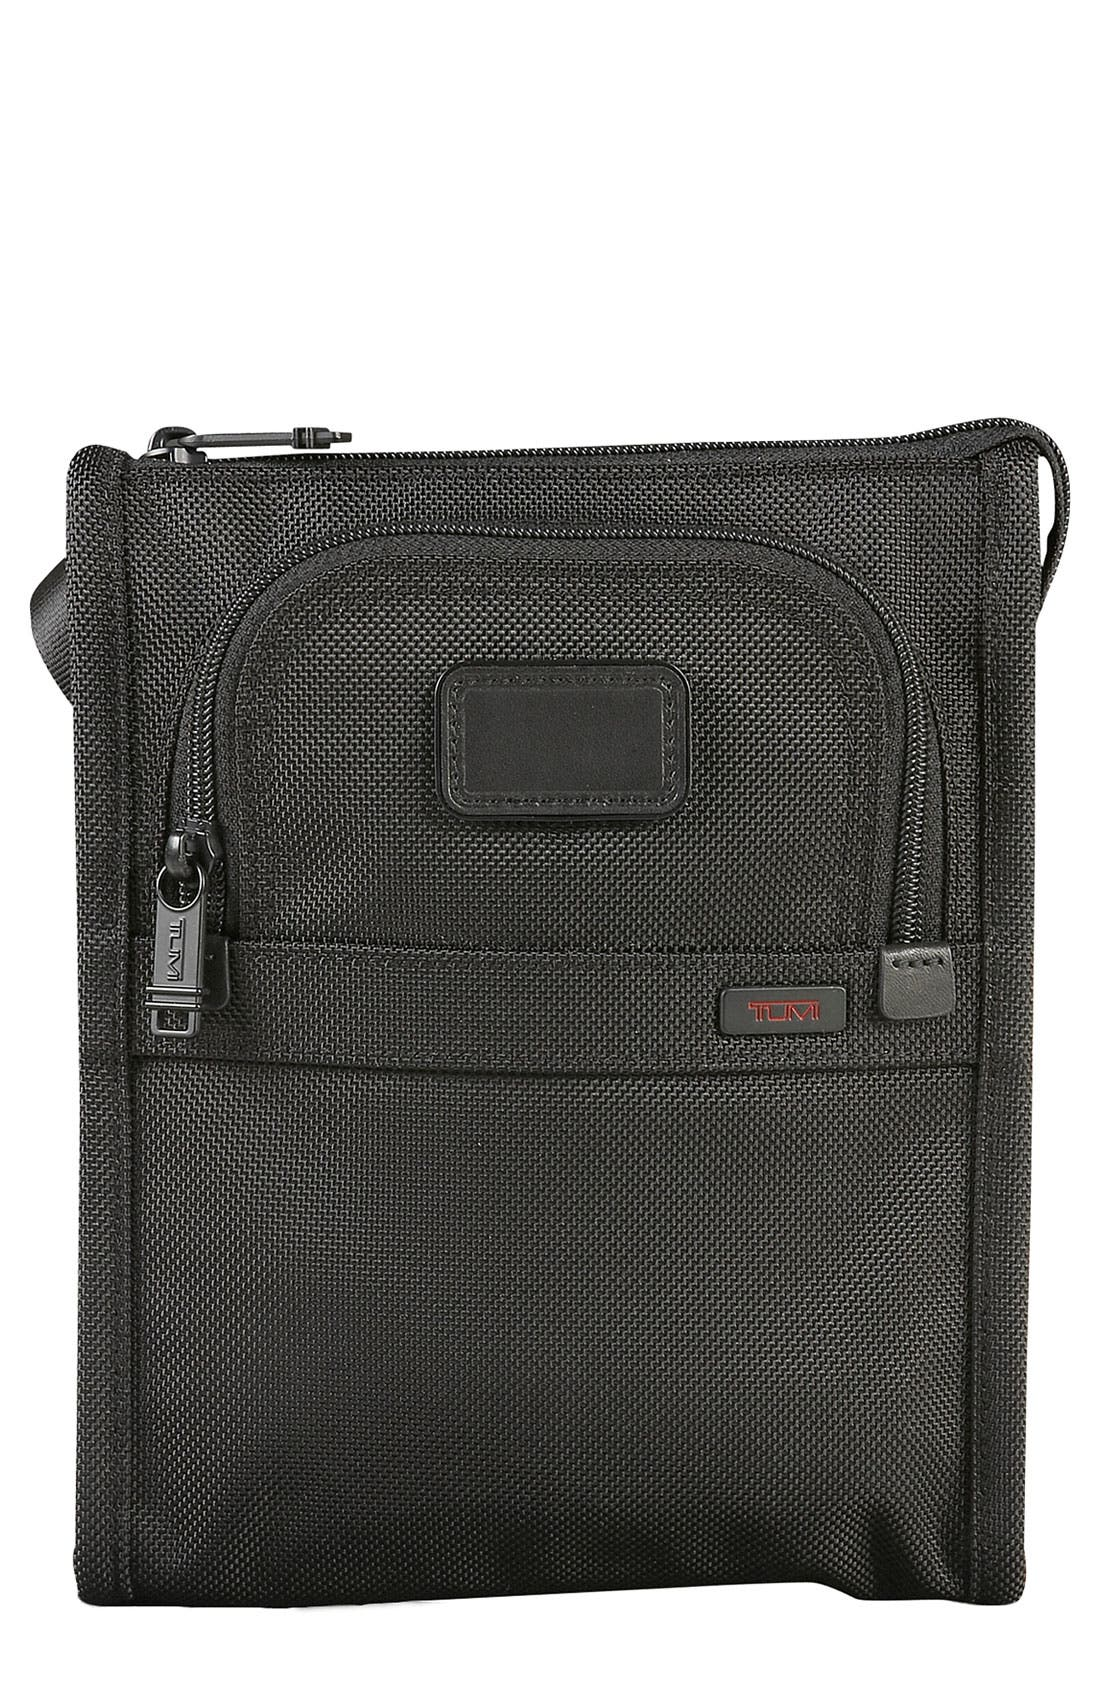 Main Image - Tumi 'Small Alpha' Crossbody Pocket Bag